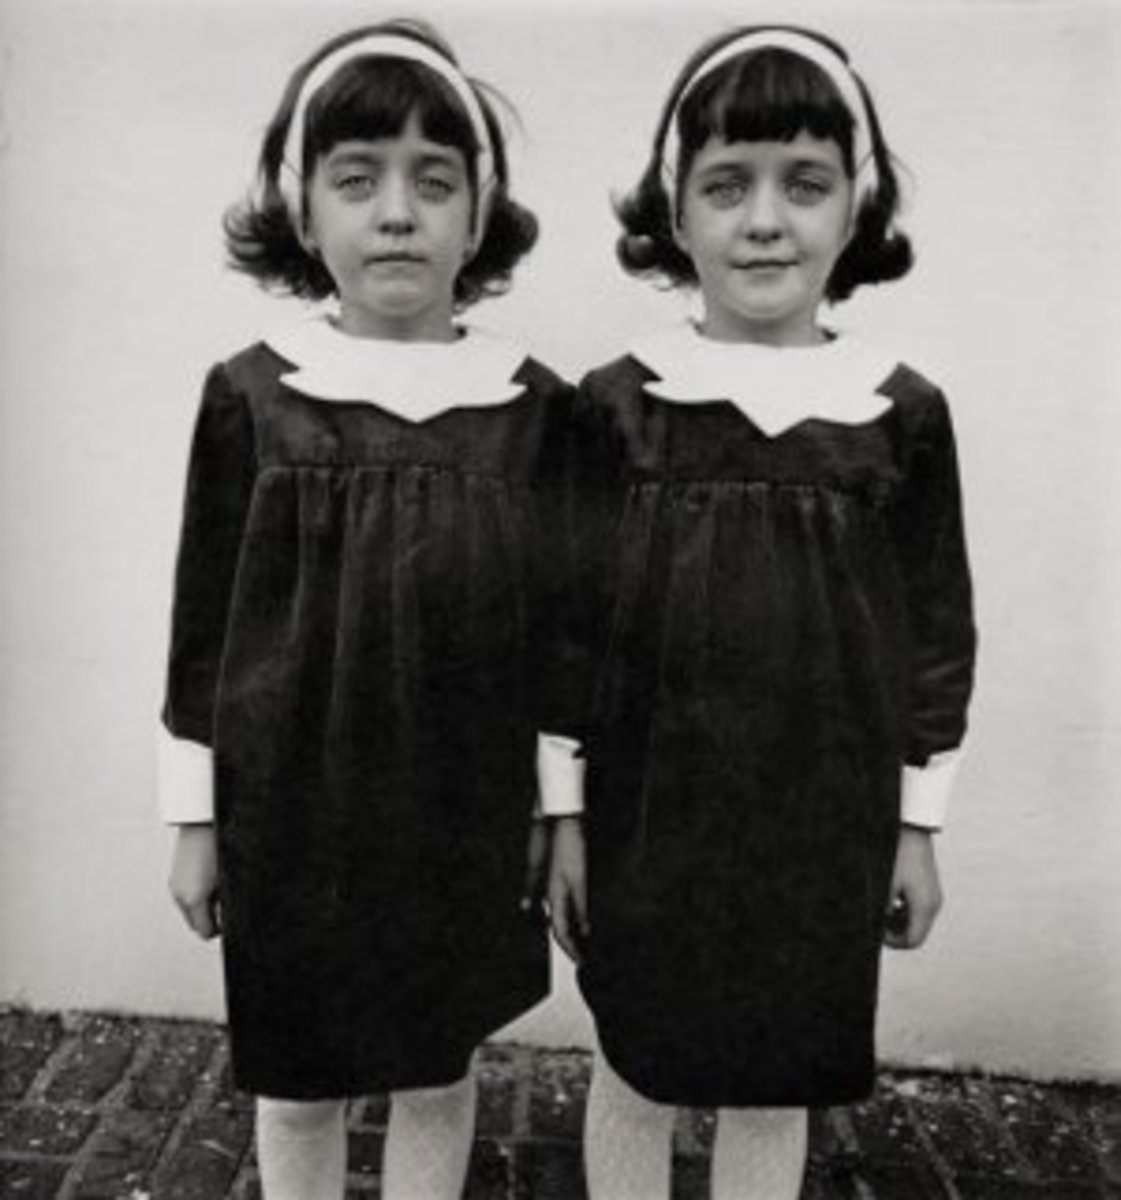 Here is a set of twins set aside for study in WWII.